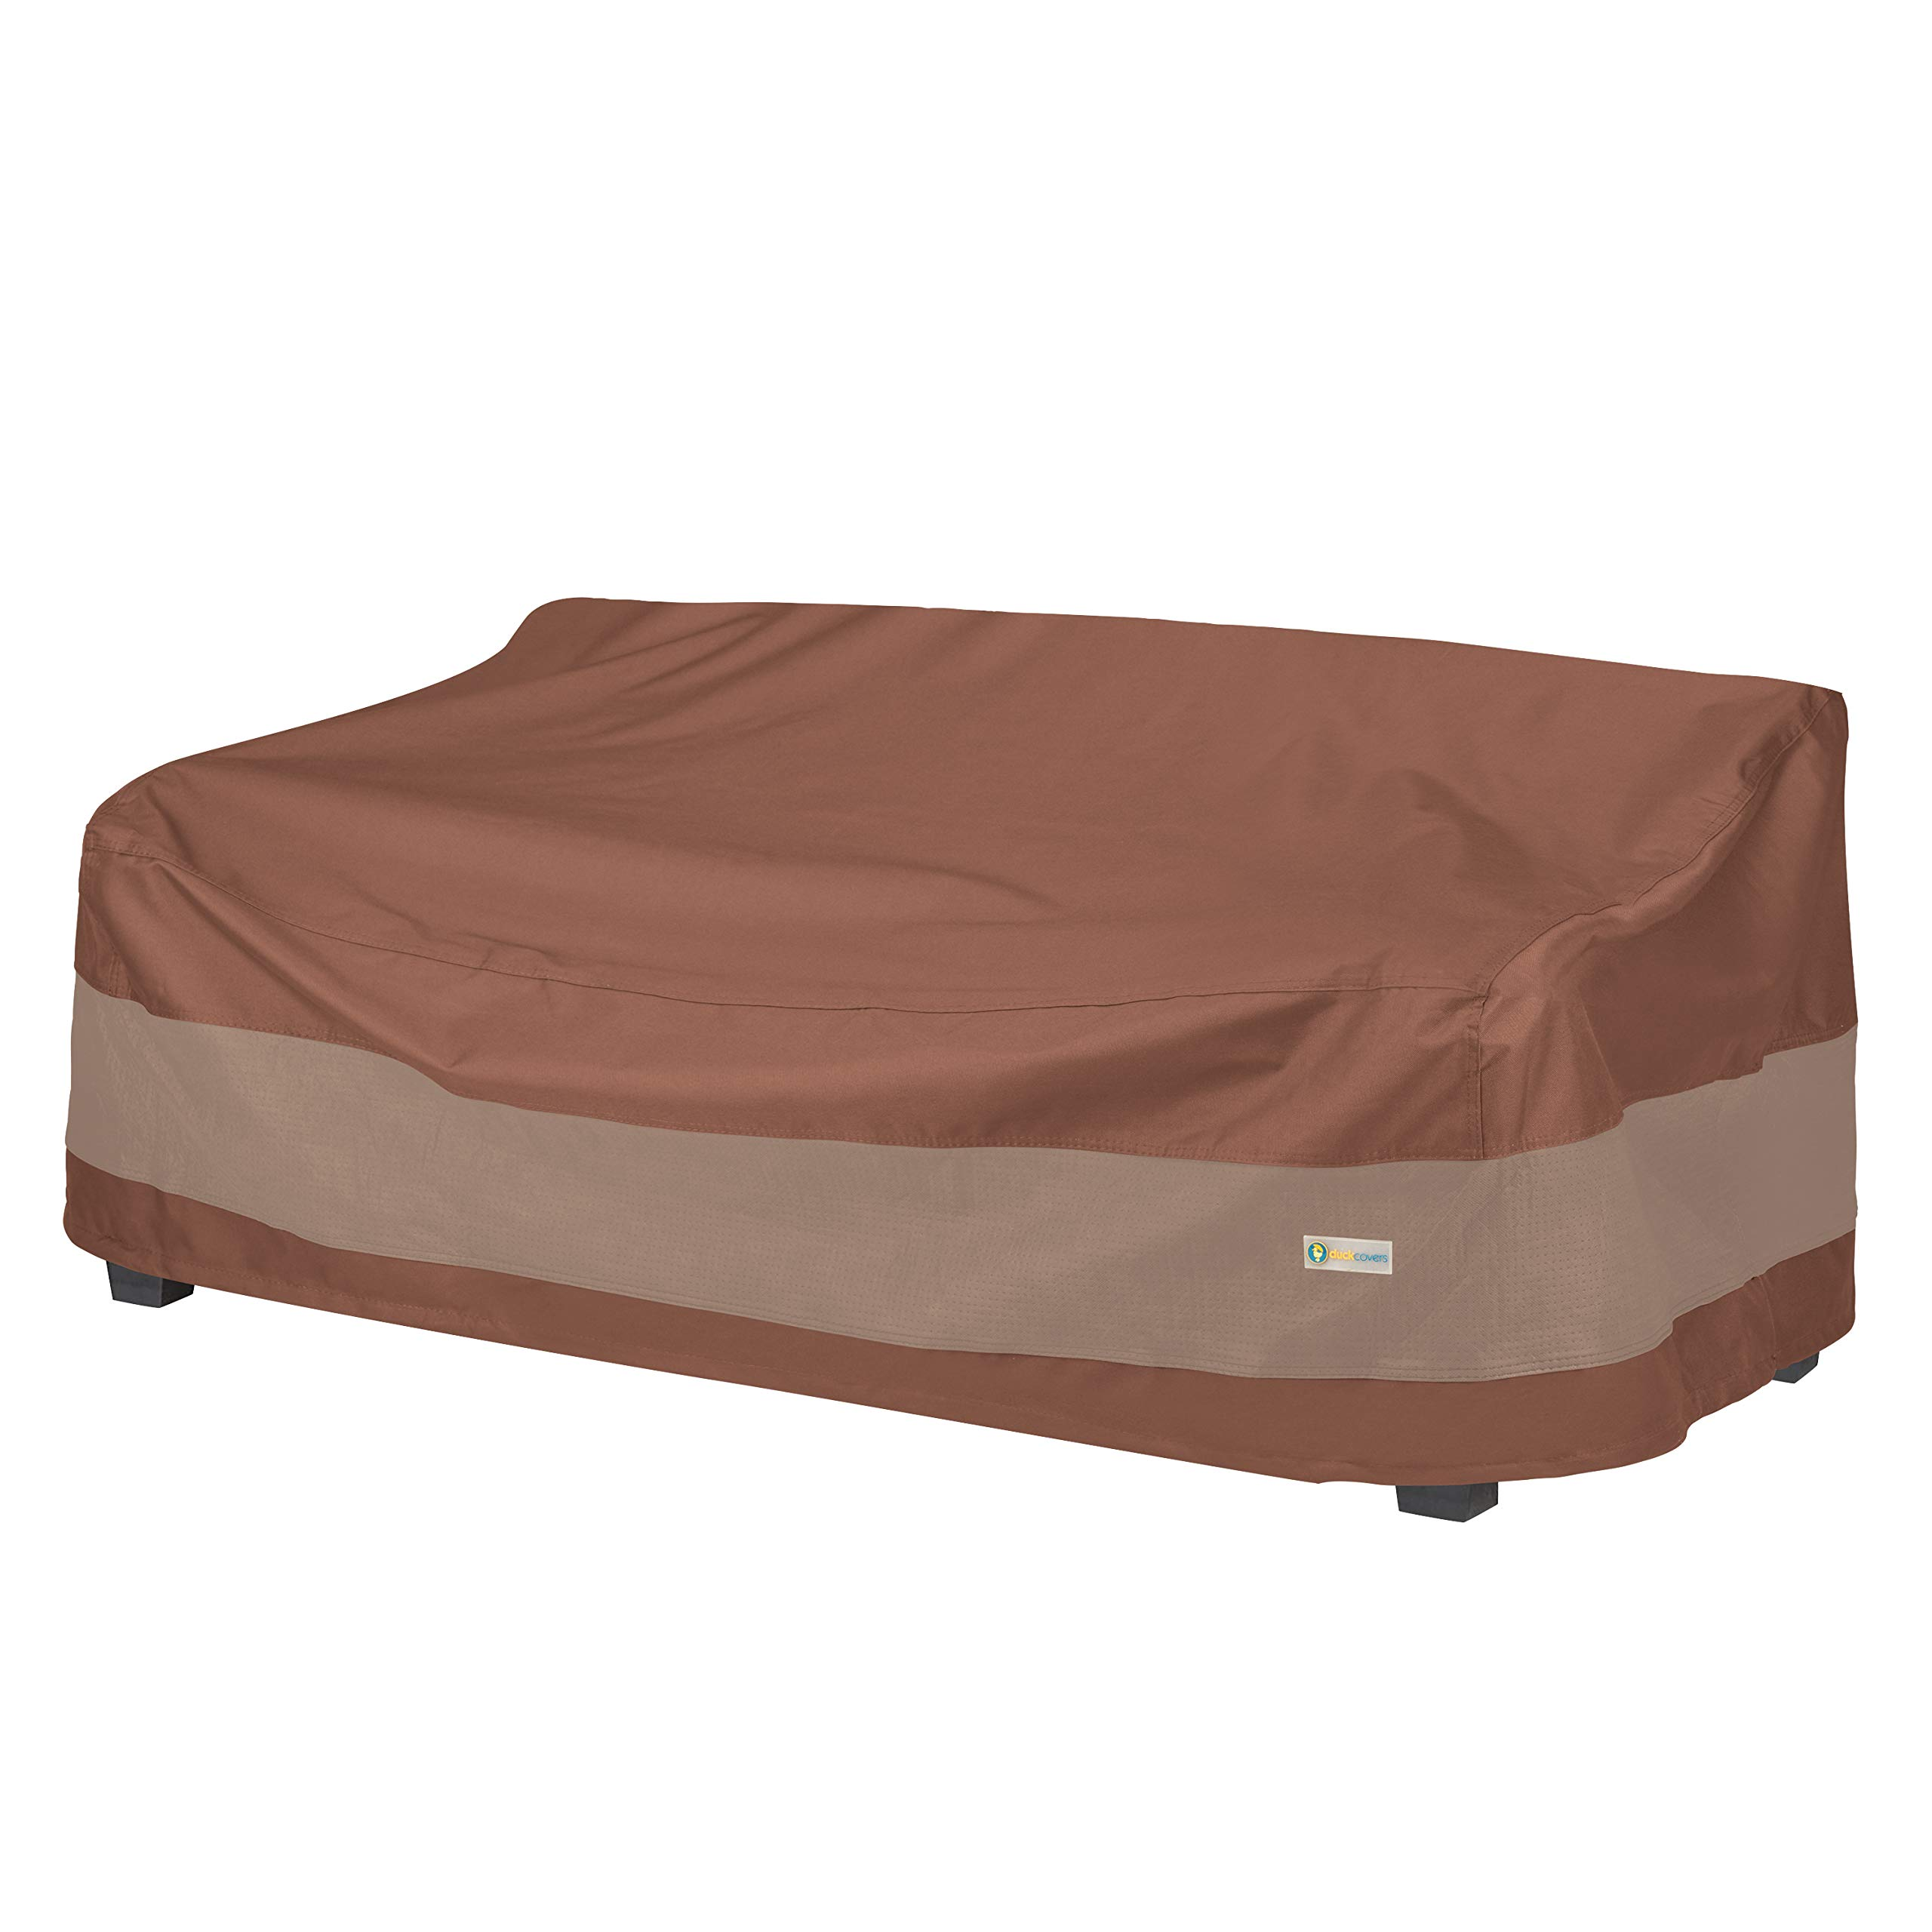 Duck Covers Ultimate Patio Sofa Cover, 79-Inch by Duck Covers